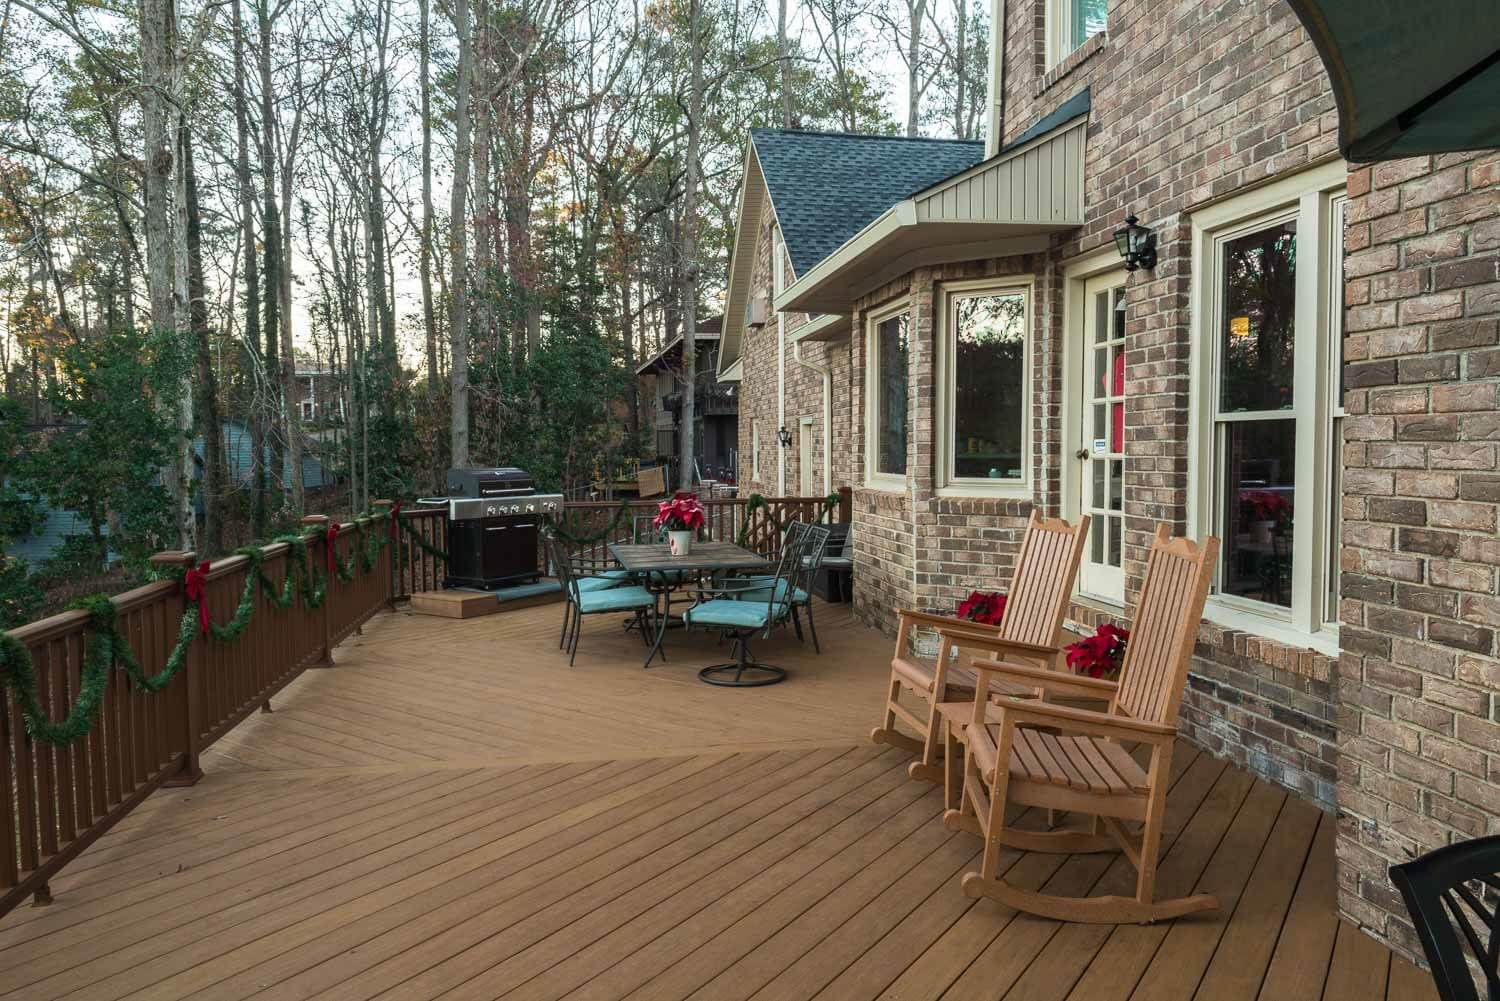 Custom backyard deck with outdoor kitchen, dining area and rocking chairs